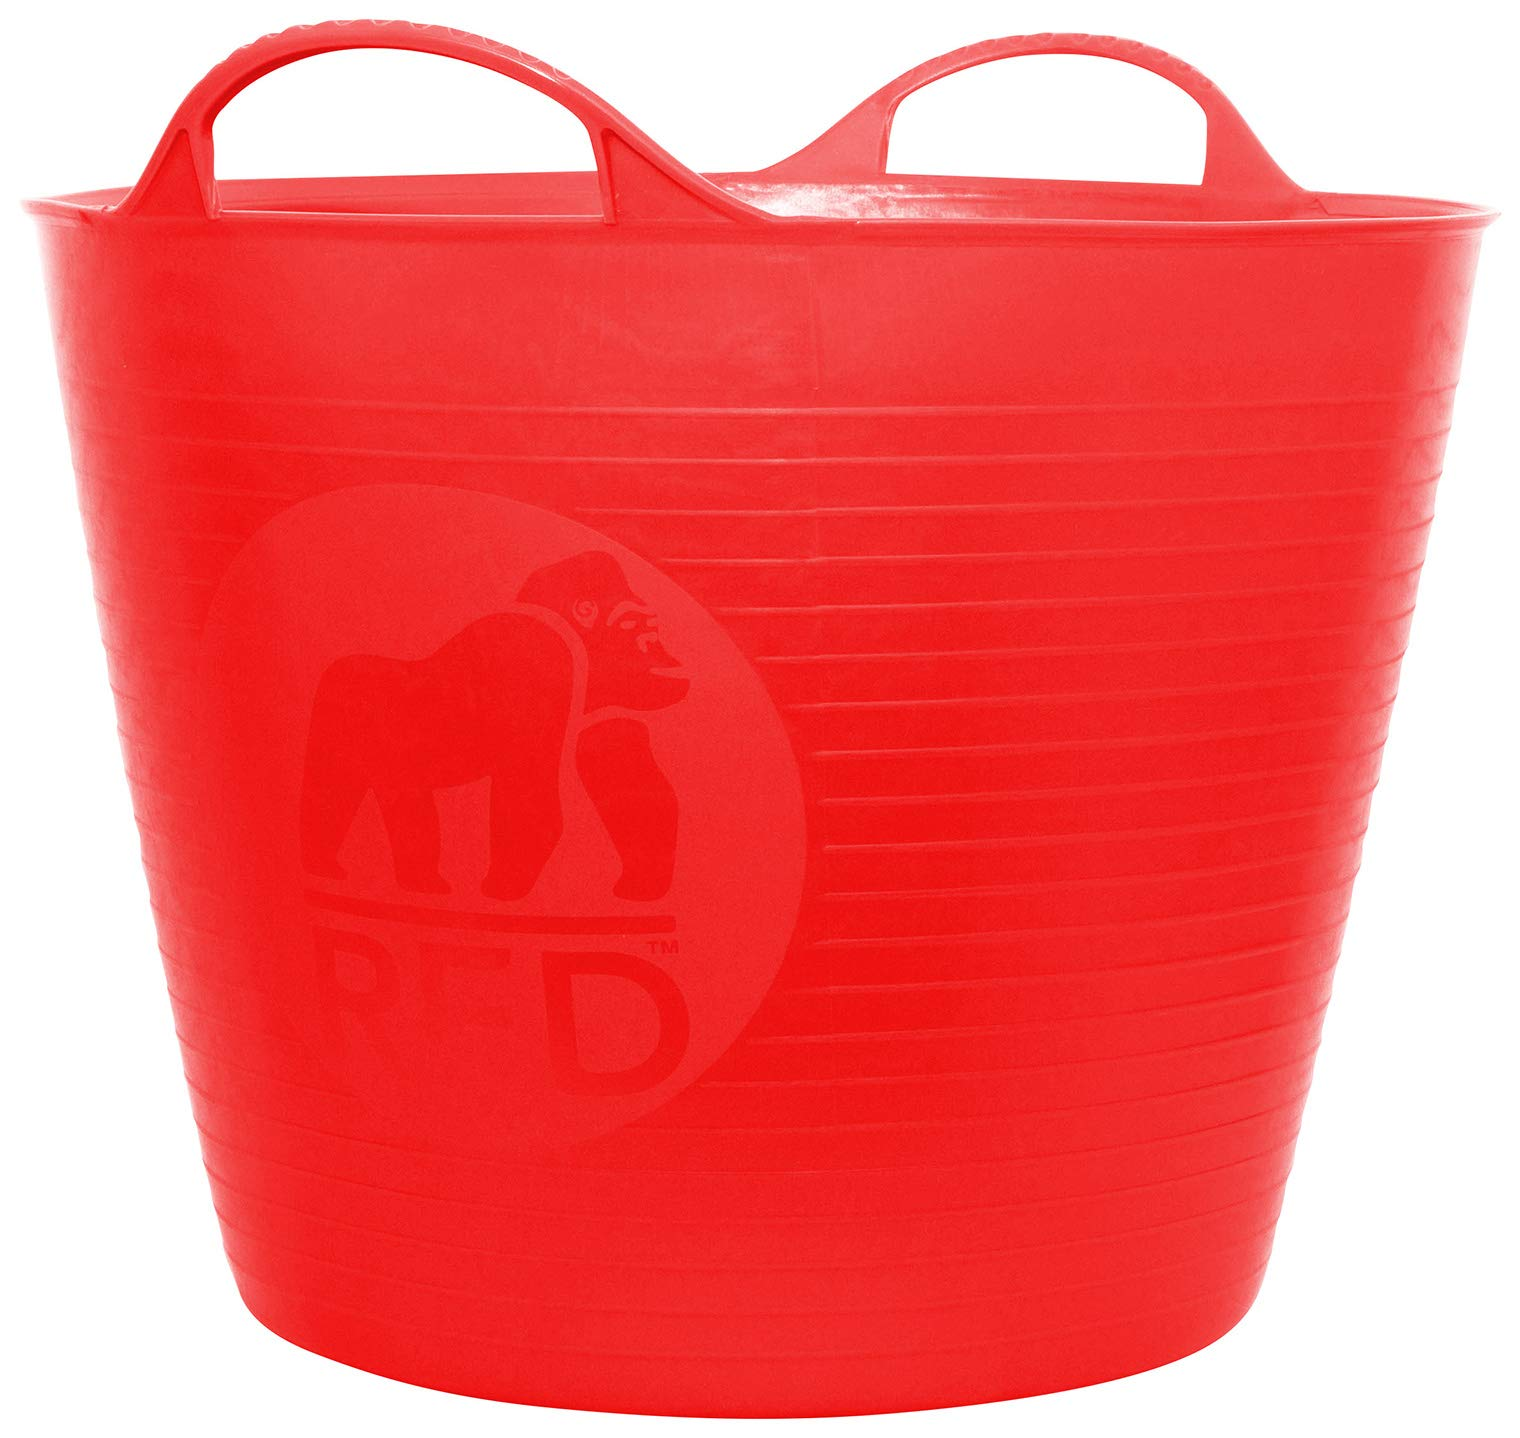 Decco Ltd Cubo Flexible, Rojo, 26 litros product image